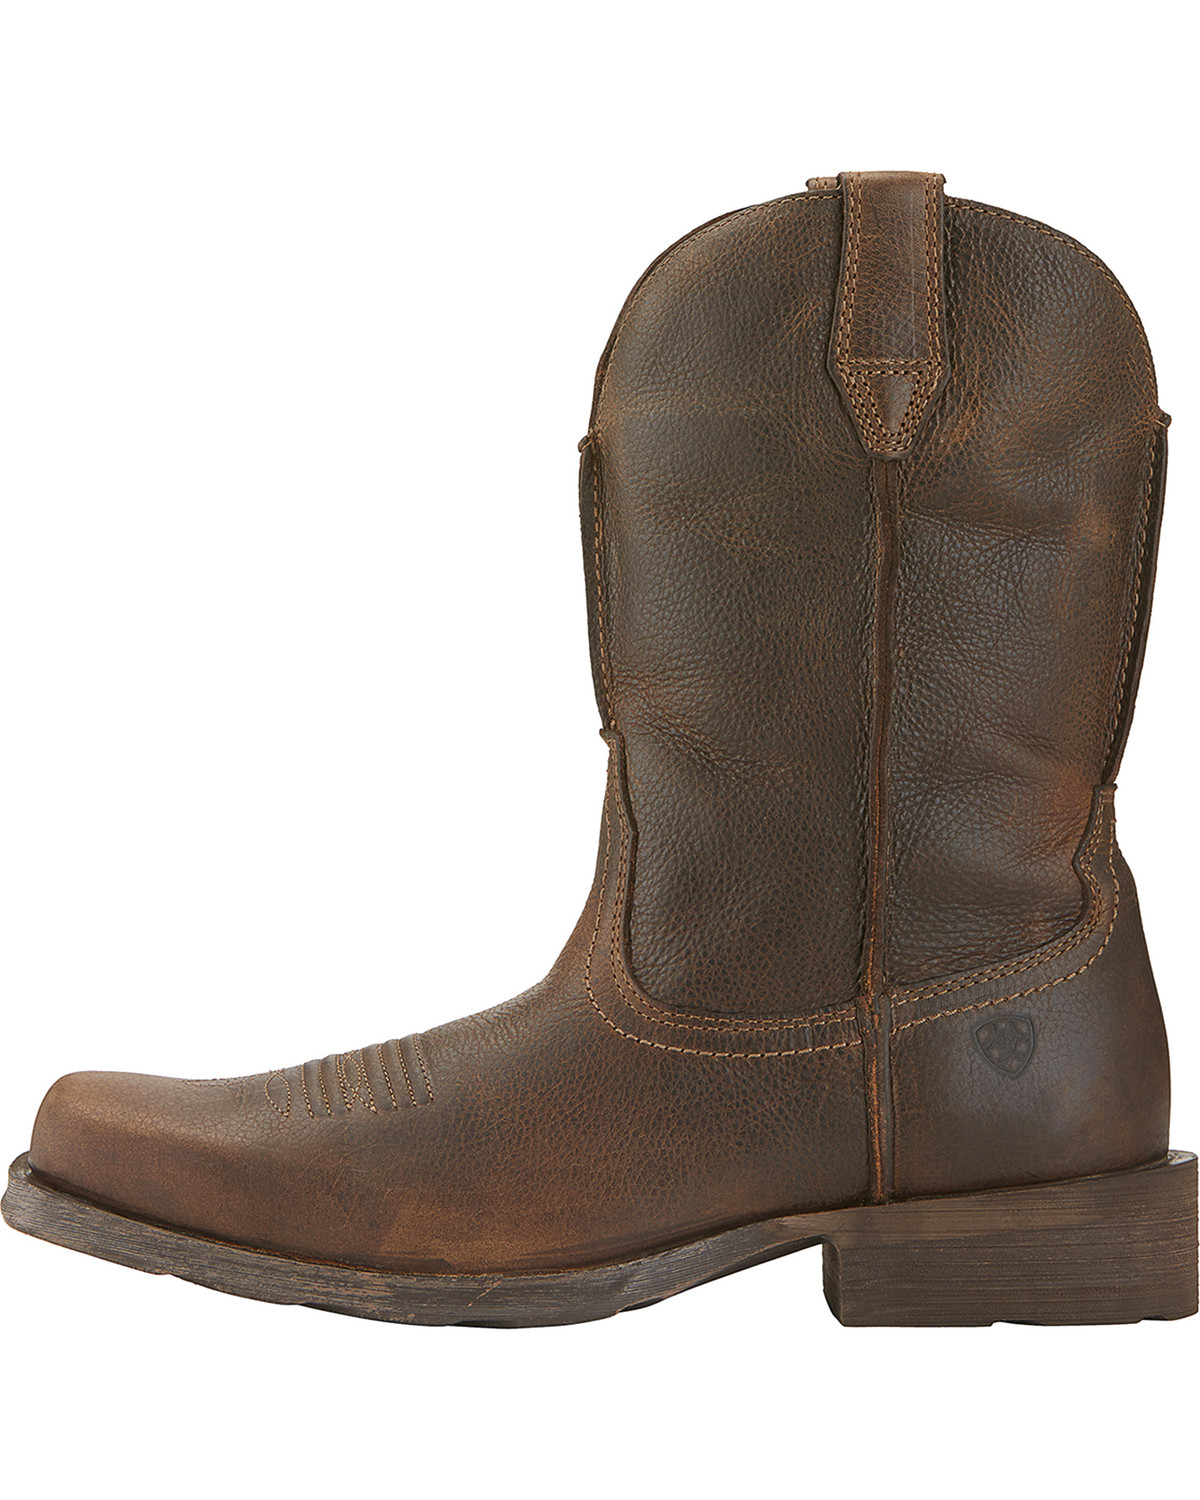 Montecarlo and Bullhide Hat Co. is the leader in the western fashion industry with a fine tradition of quality hat and leather jackets making.